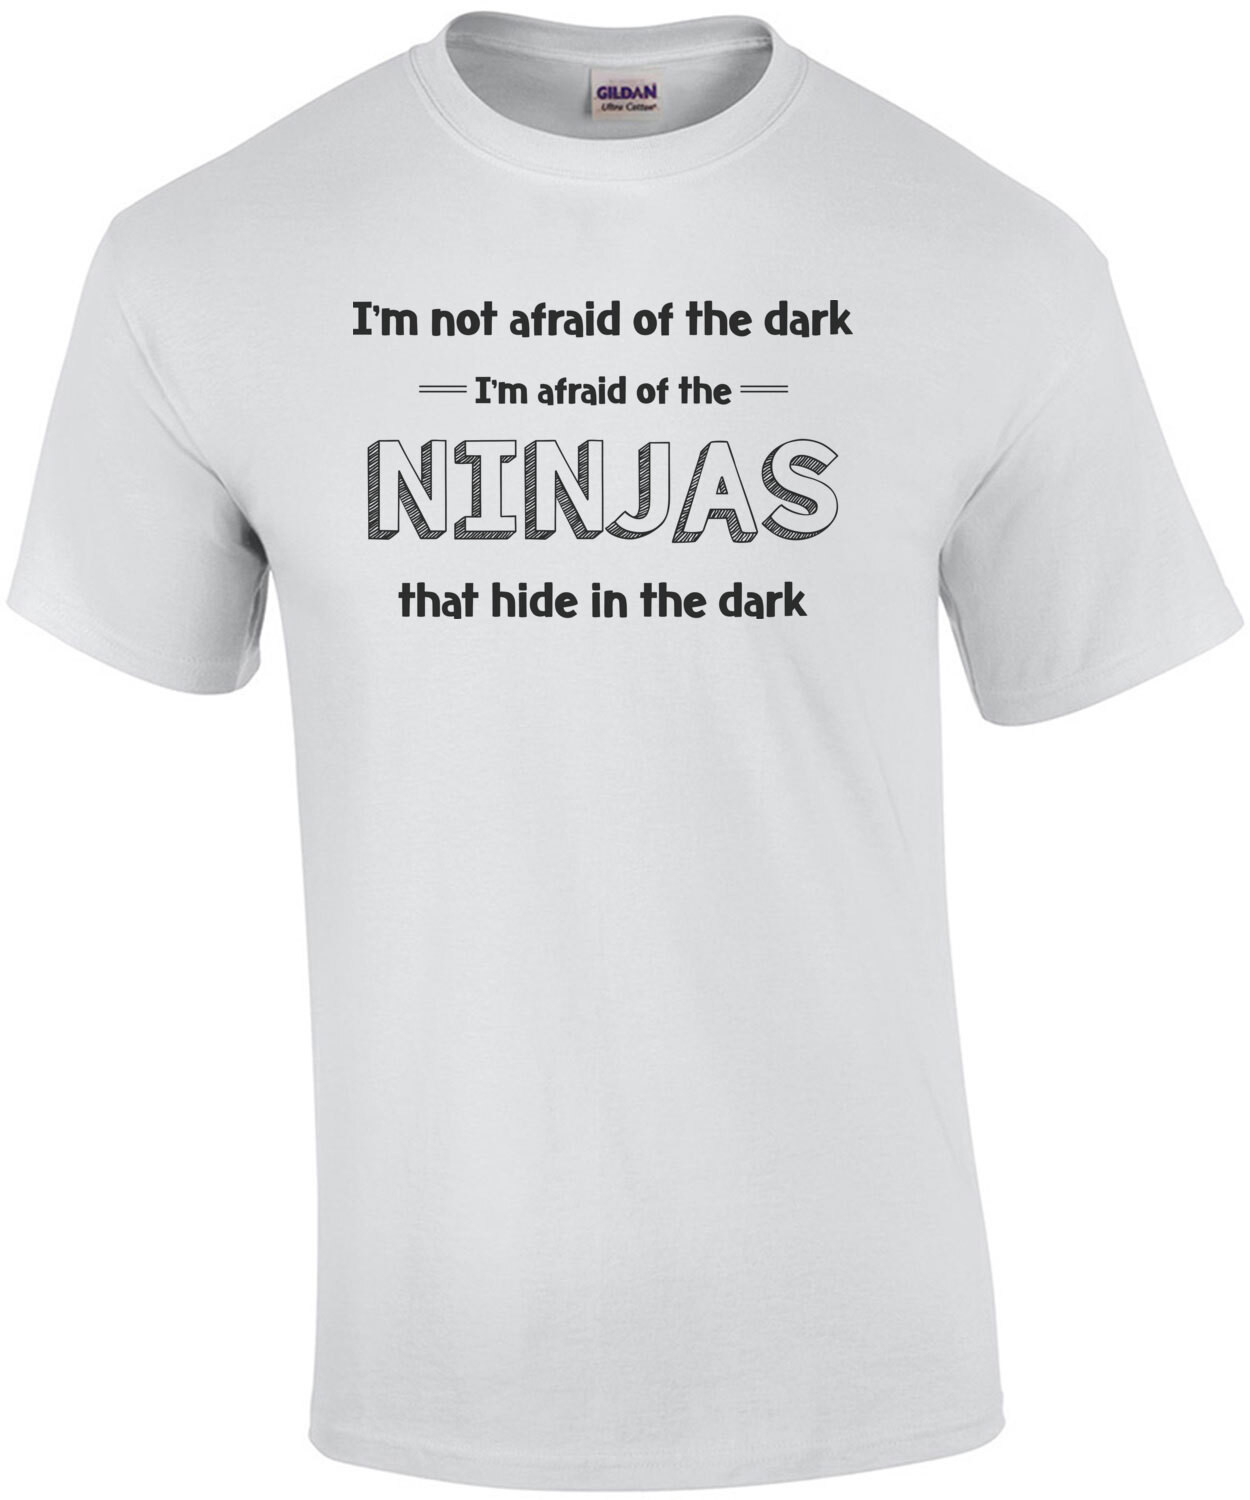 I'm Not Afraid of the Dark, I'm Afraid of Ninjas that Hide in the Dark  T-Shirt